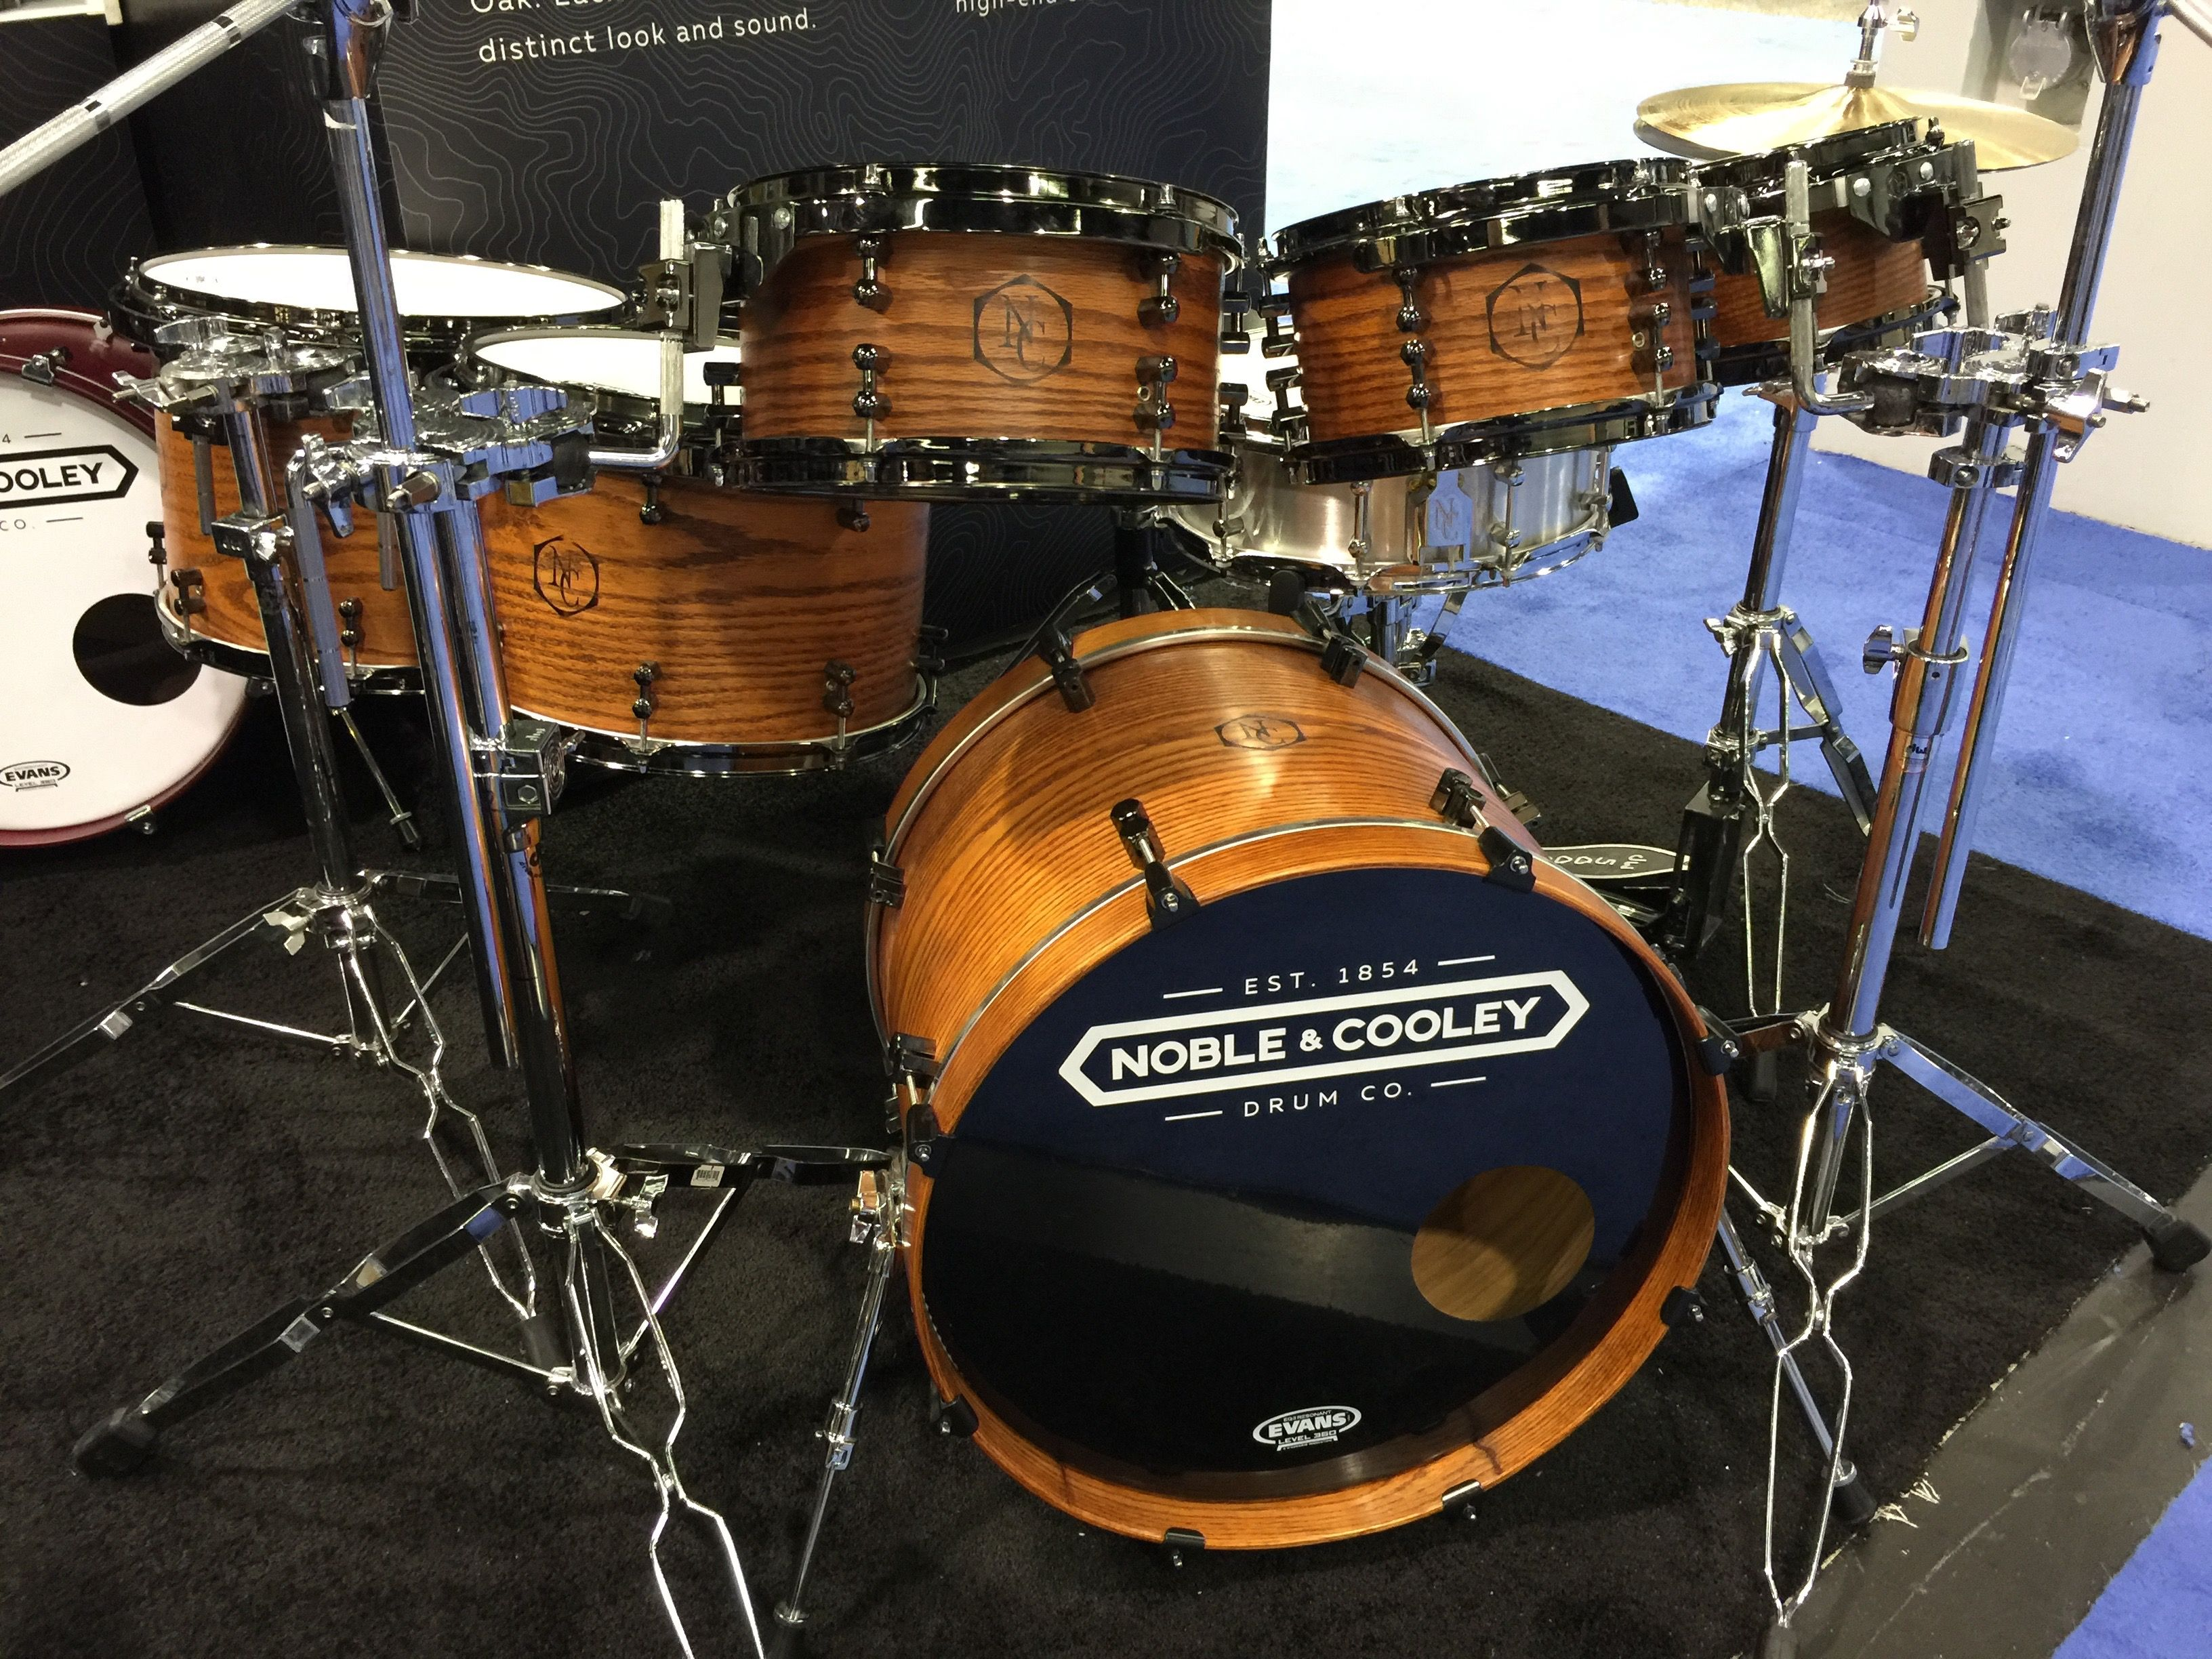 Bateria Musica Porno noble & cooley drum company oak kit   all things percussion